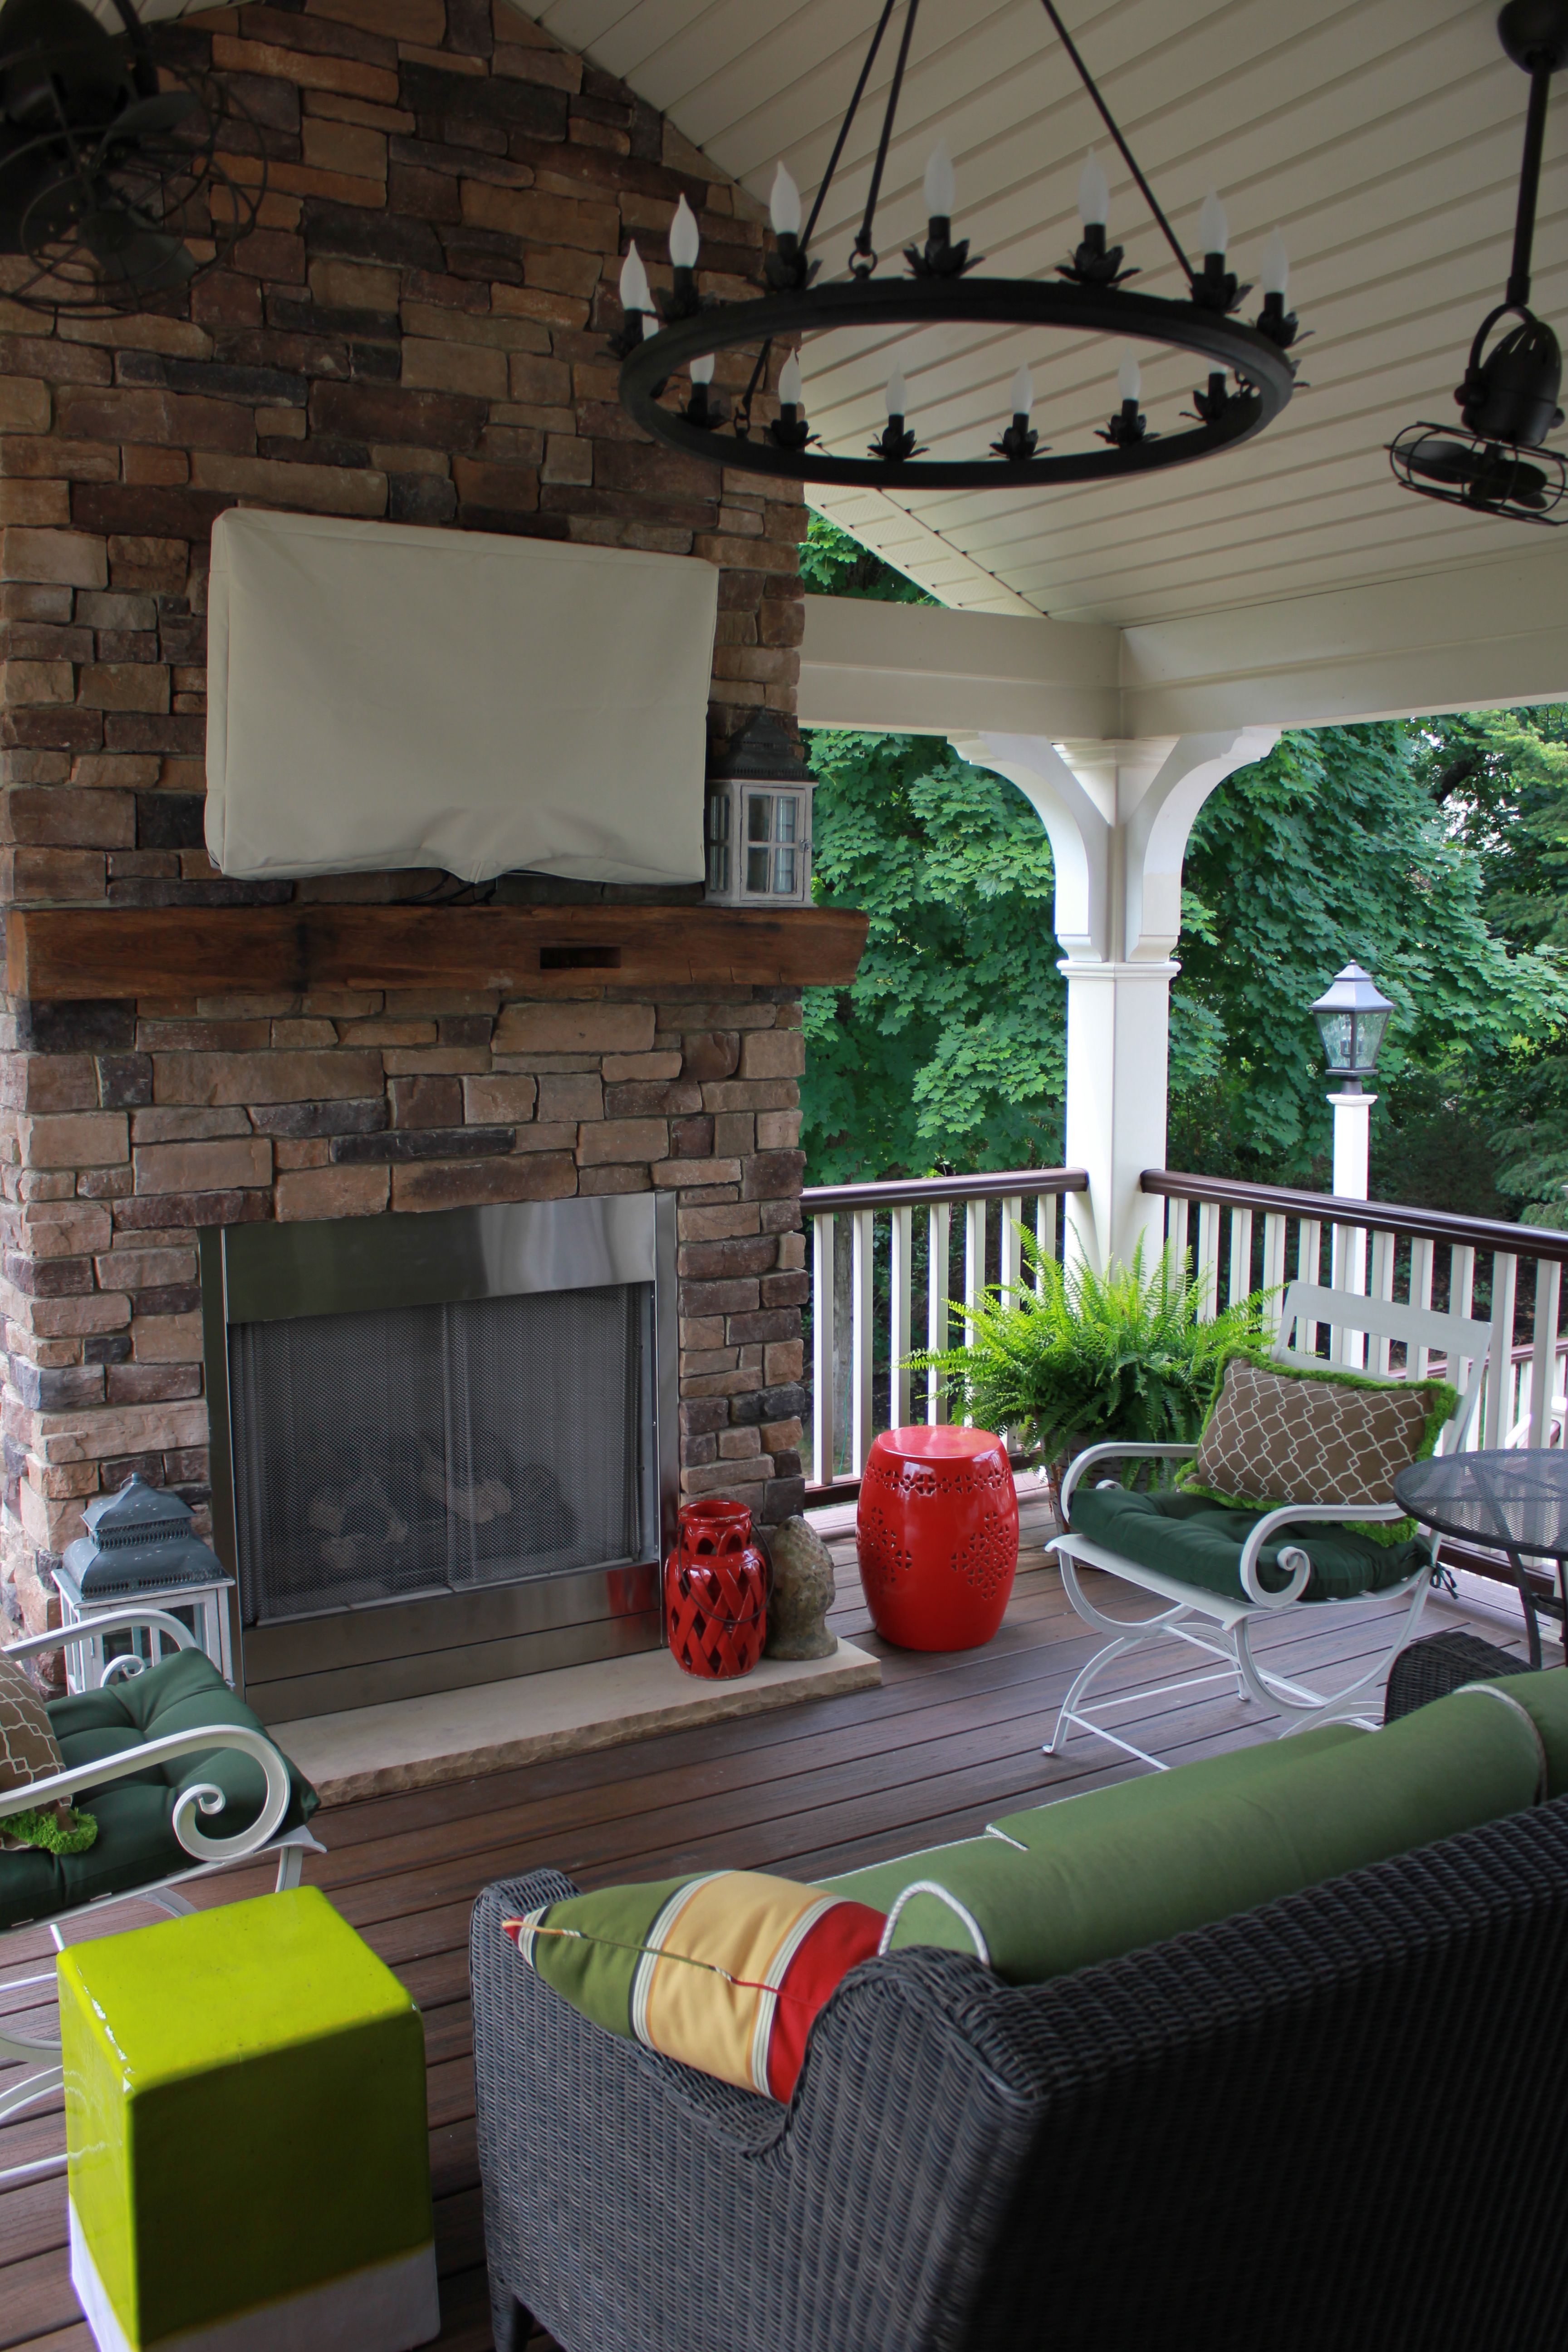 Trex Deck with Gas Fireplace | Outdoor remodel, Deck ... on Outdoor Gas Fireplace For Deck id=62254